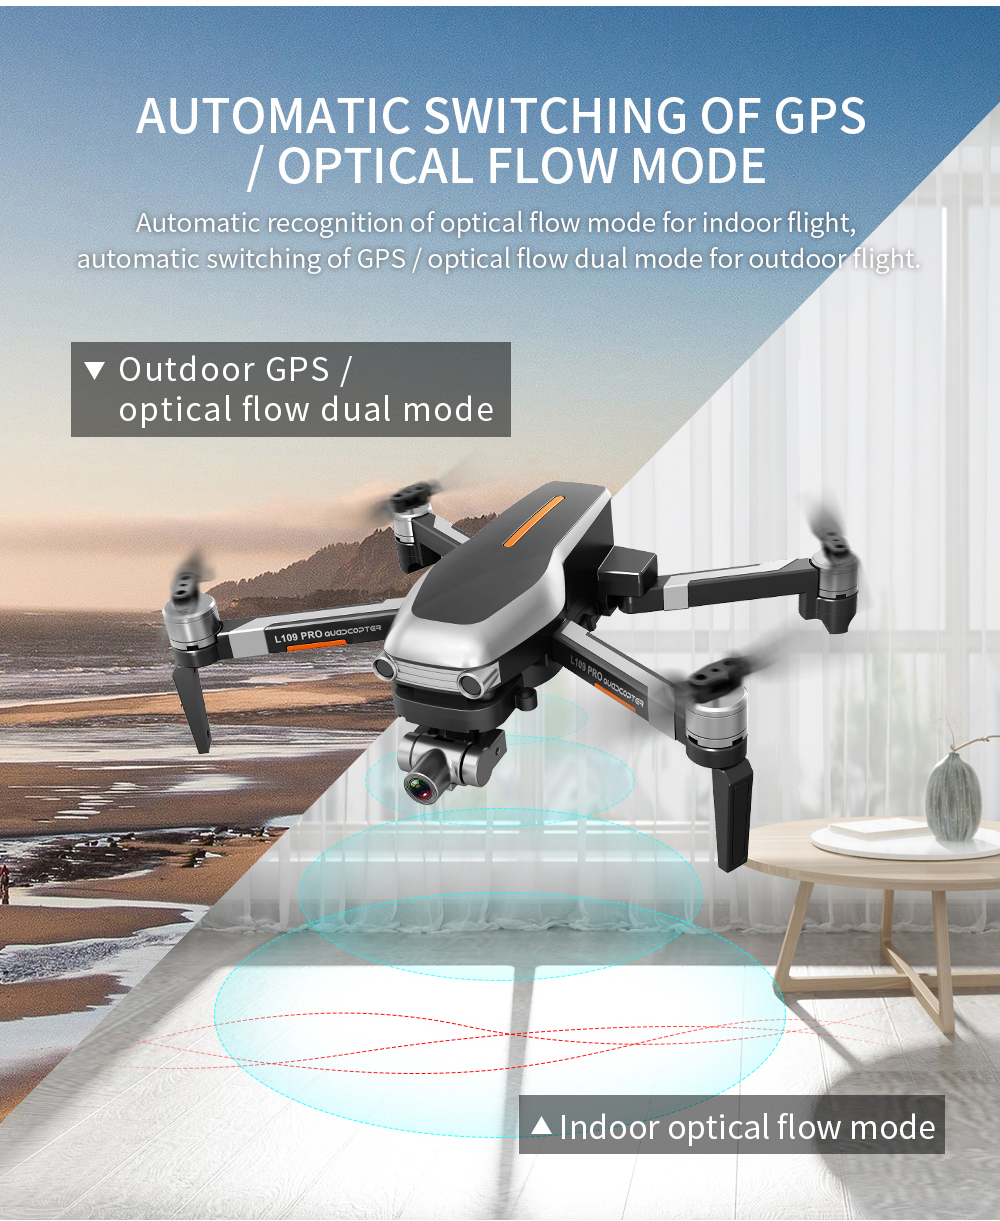 L109 PRO GPS 5G WiFi 800M FPV with 4K HD Camera 2-Axis Mechanical Stabilization Gimbal Optical Flow Positioning RC Quadcopter- Gray 1 Battery with Box